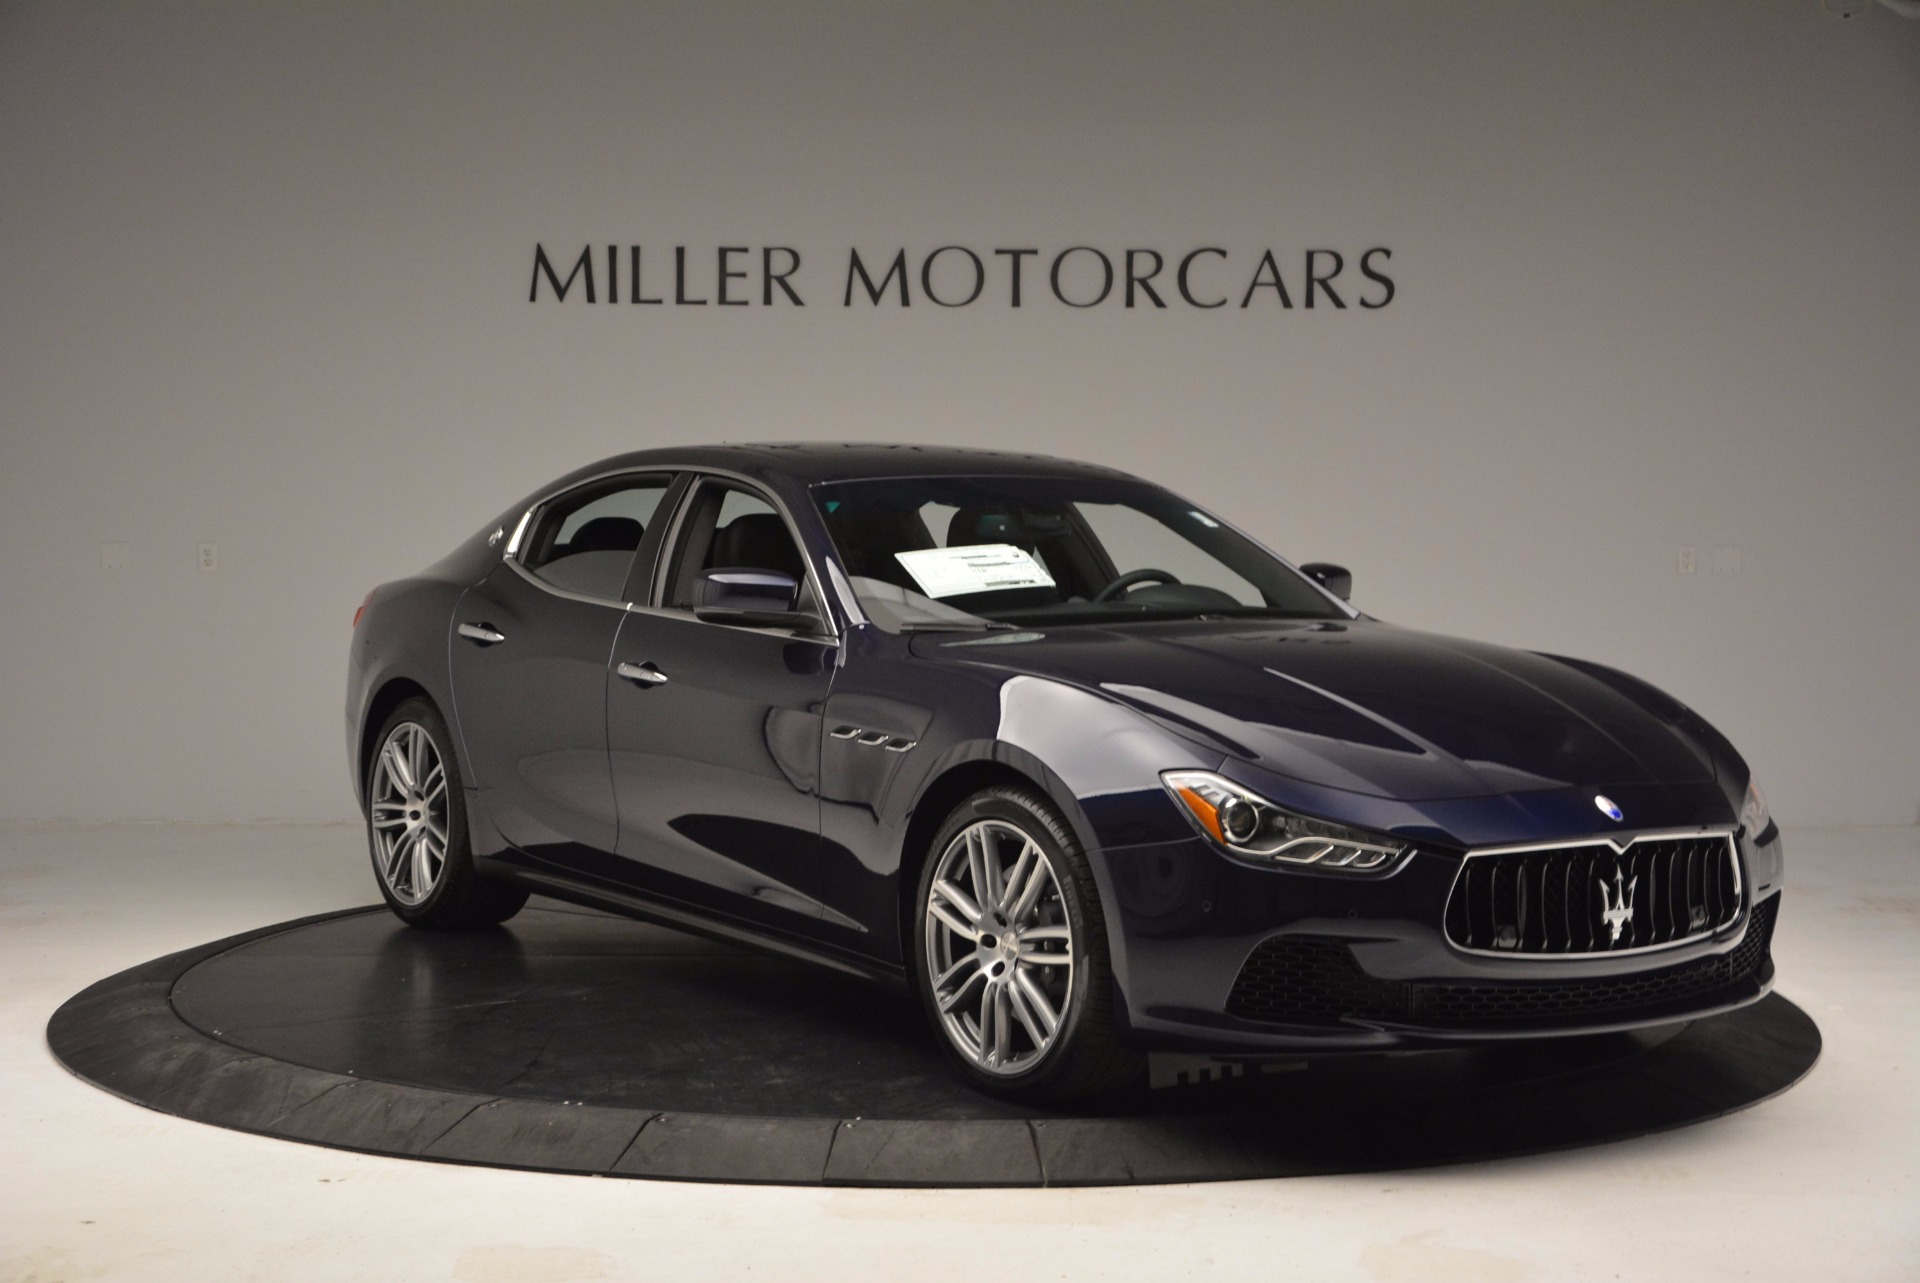 New 2017 Maserati Ghibli S Q4 For Sale In Westport, CT 1041_p11